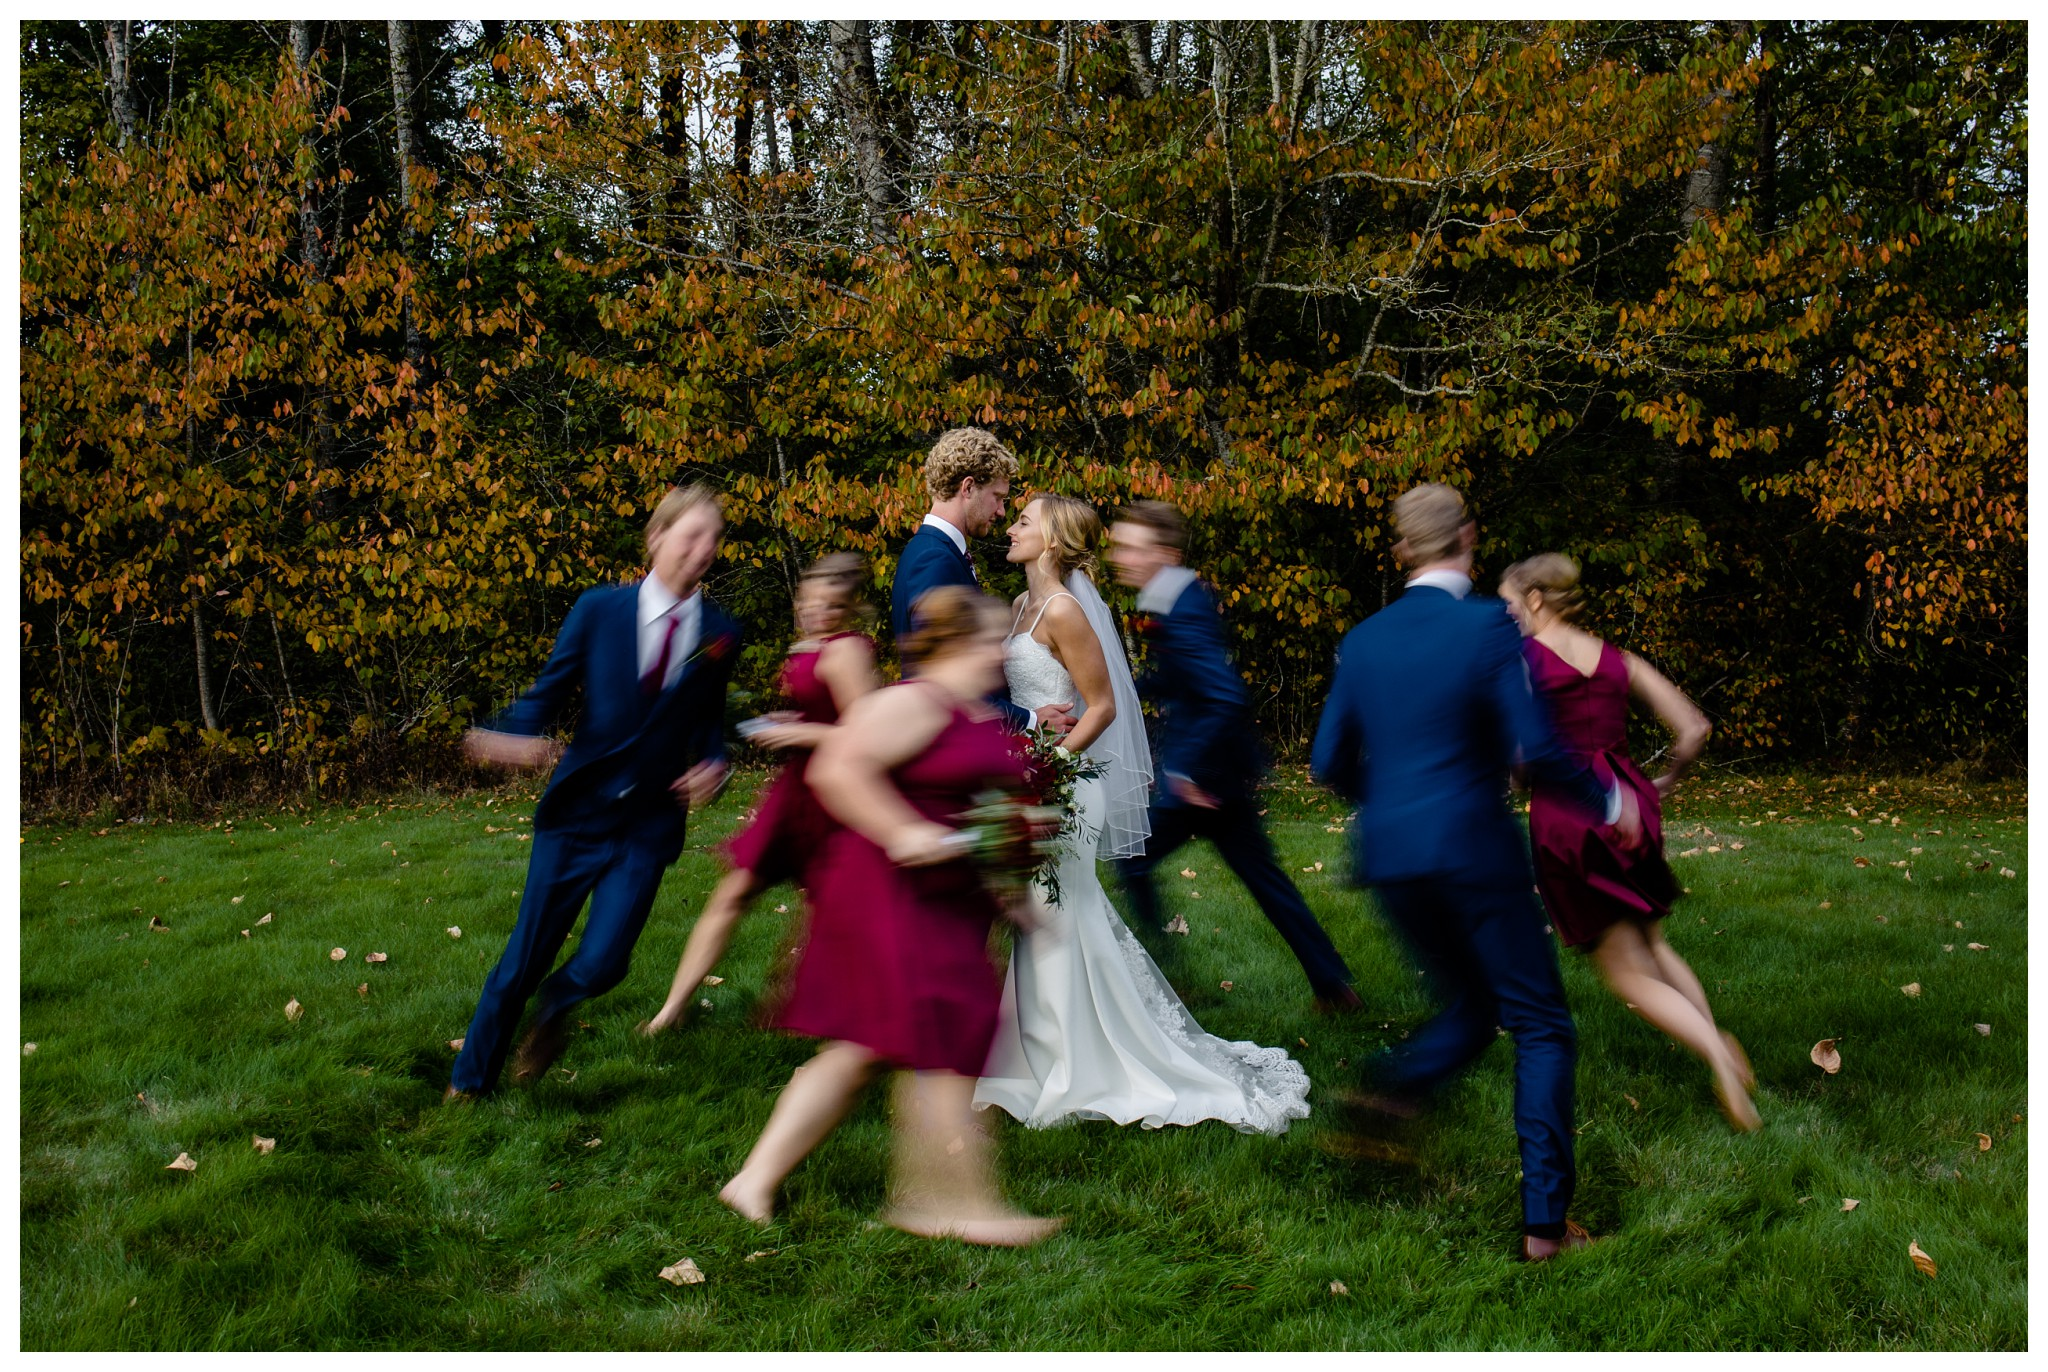 Campbell Valley Park Wedding Photographer Canadian Reformed Church Willoughby Heights Christian Fall Burgundy Navy Roses Wedding_0061.jpg